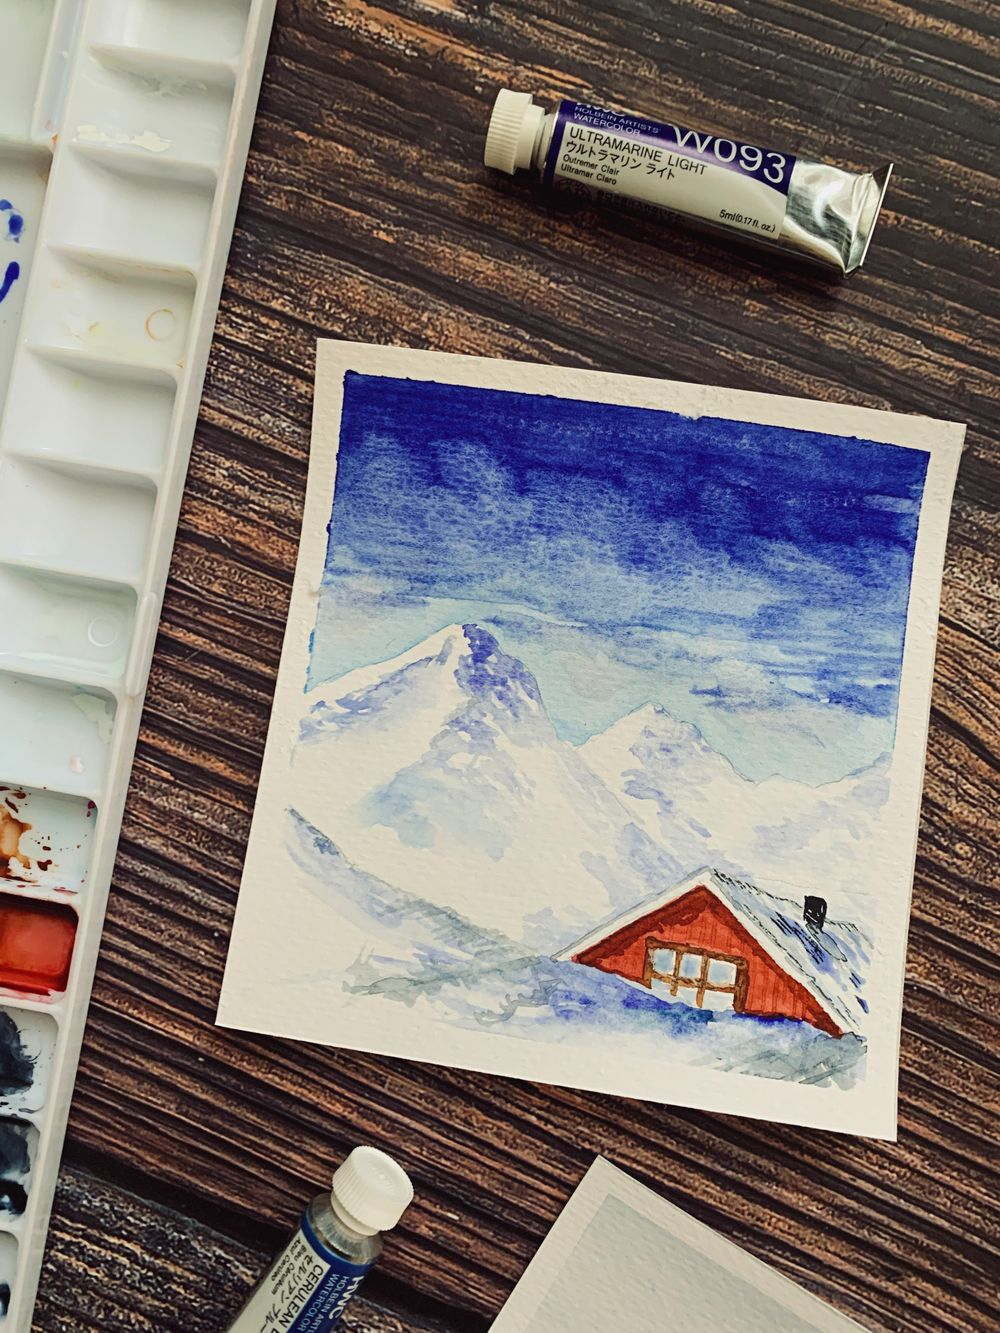 Fun Snowy Watercolor Paintings - image 1 - student project